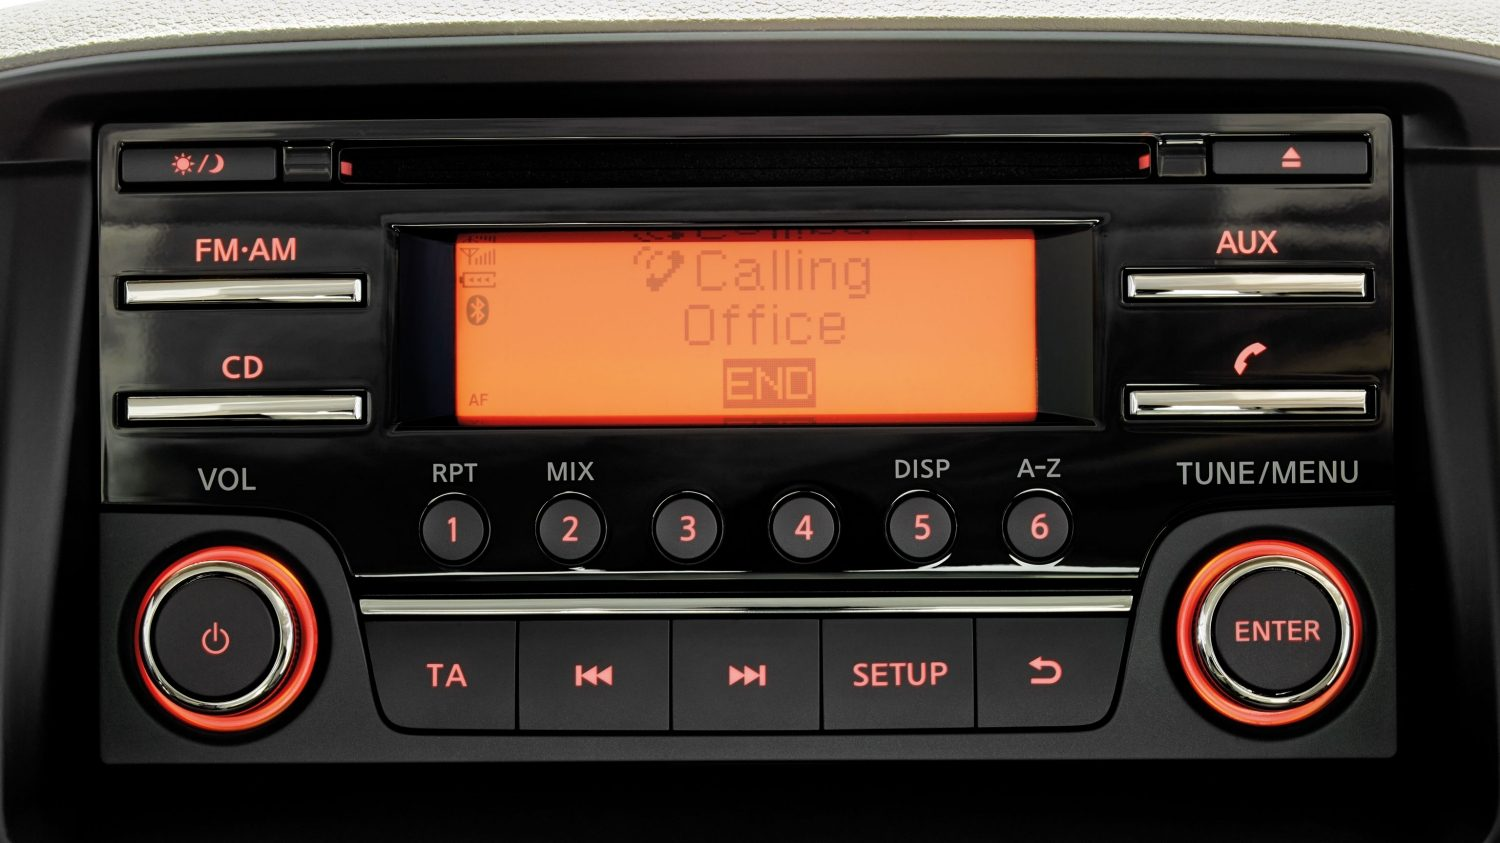 Nissan NT400 - Système mains libres Bluetooth® audio/radio/CD